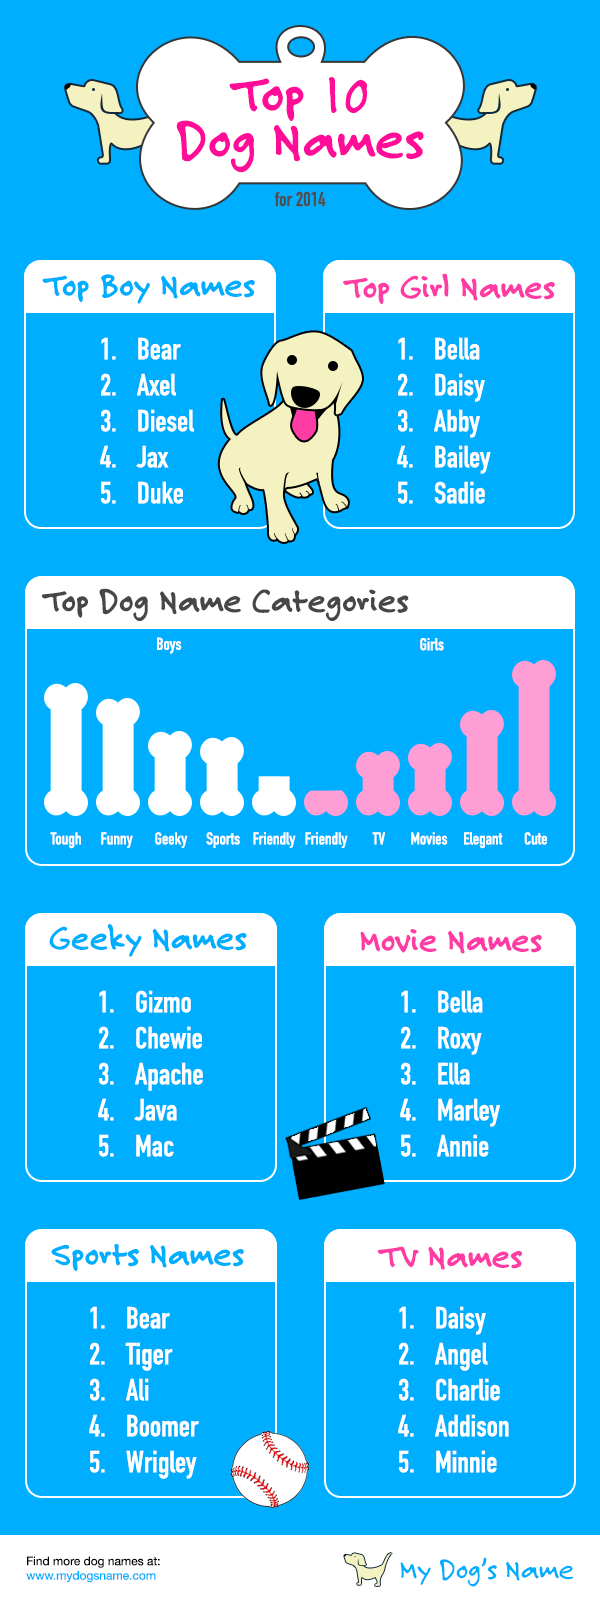 Top 10 Dog Names for 2014